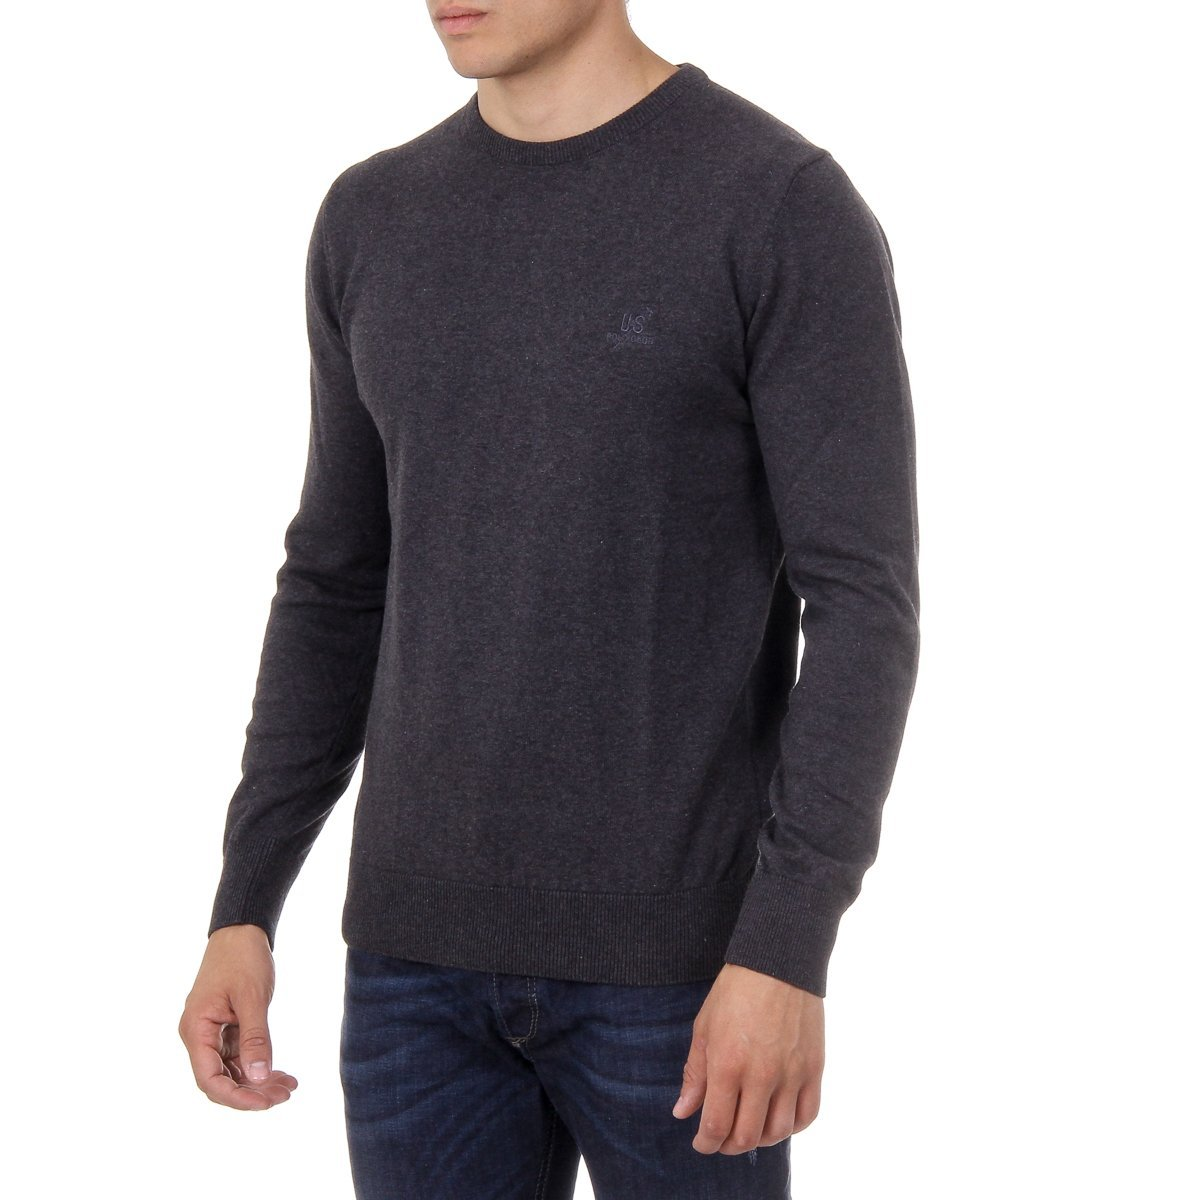 Ufford /& Suffolk Polo Club Mens Sweater Long Sleeves Round Neck PULLRUS100 Anthracite